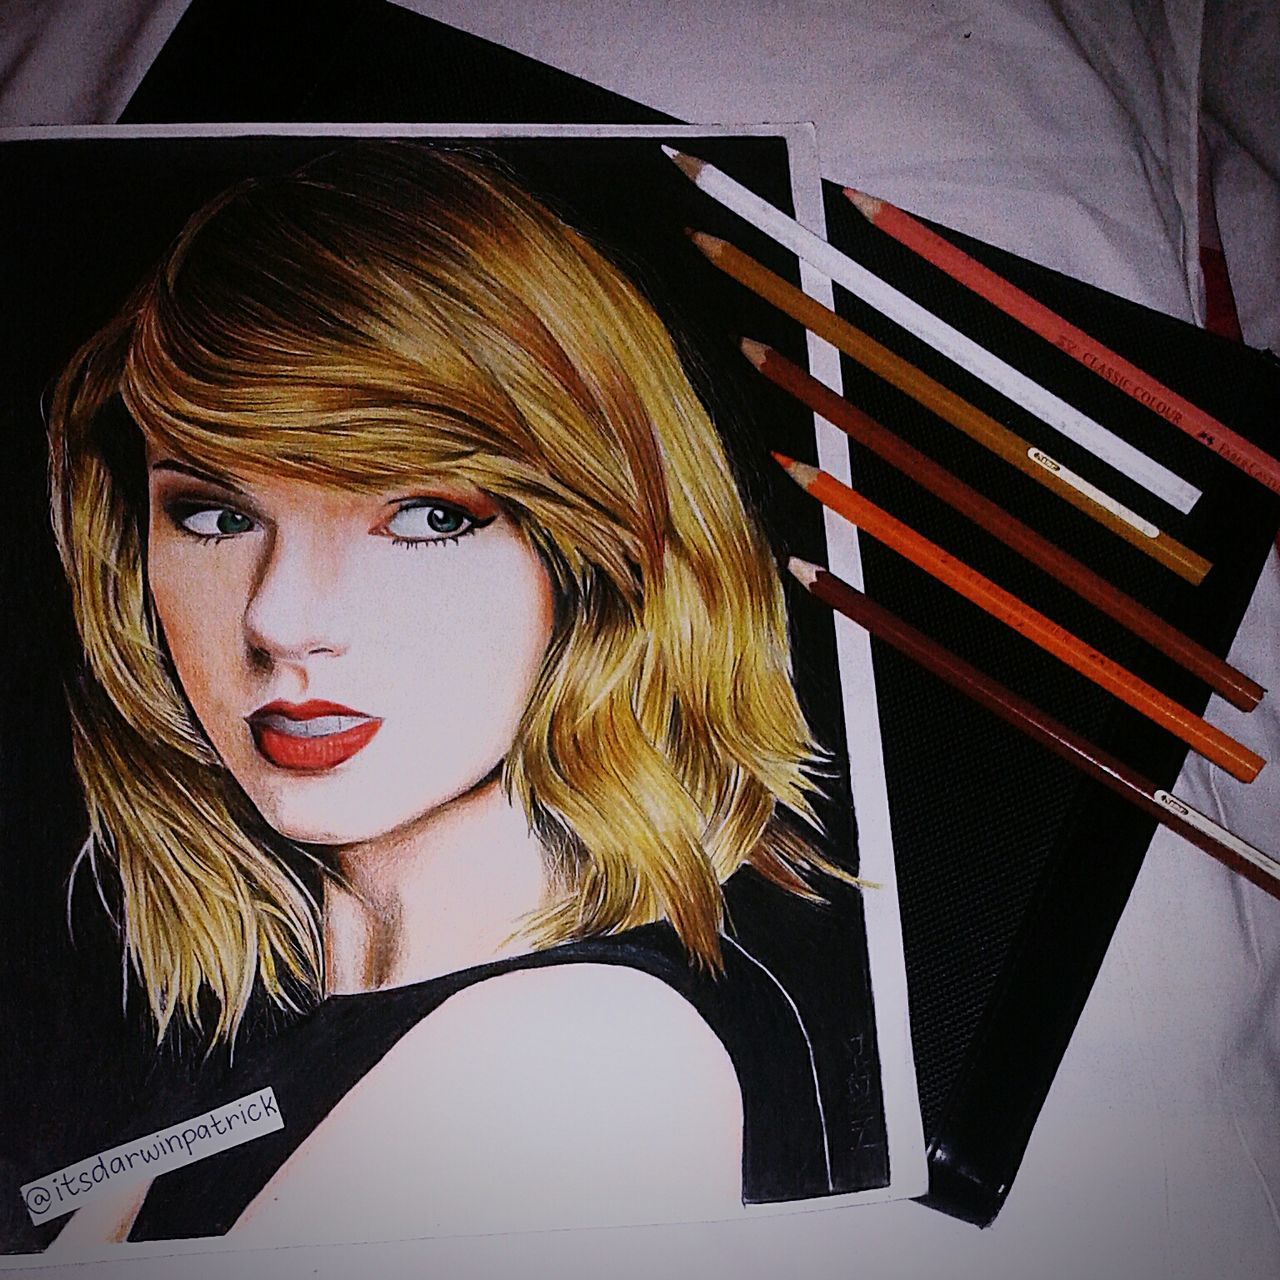 Art Gallery Art Taylor Swift Taylor Gang Official Taylor 1989 1989worldtour Artfido Artsy Artforsale